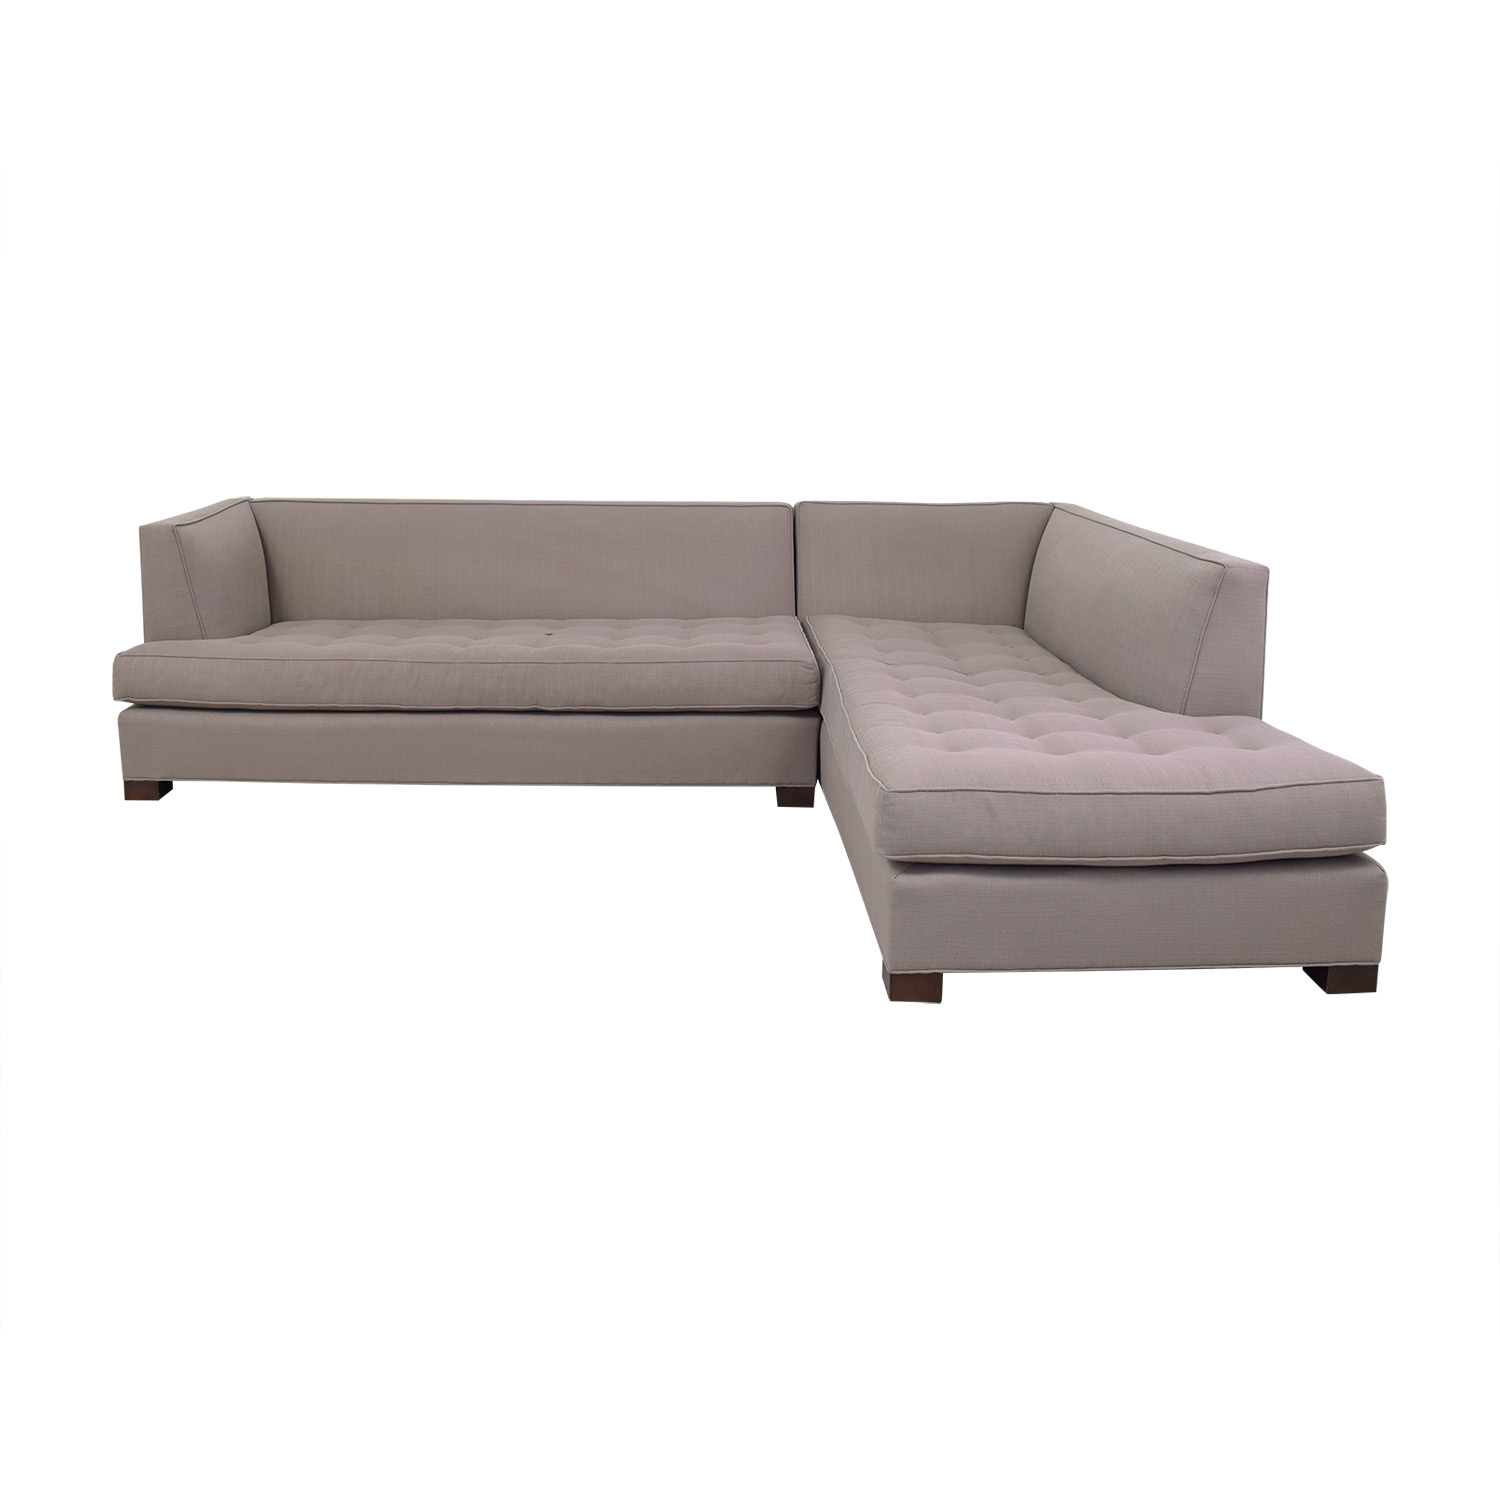 Mitchell Gold + Bob Williams Mitchell Gold + Bob Williams Sectional on sale